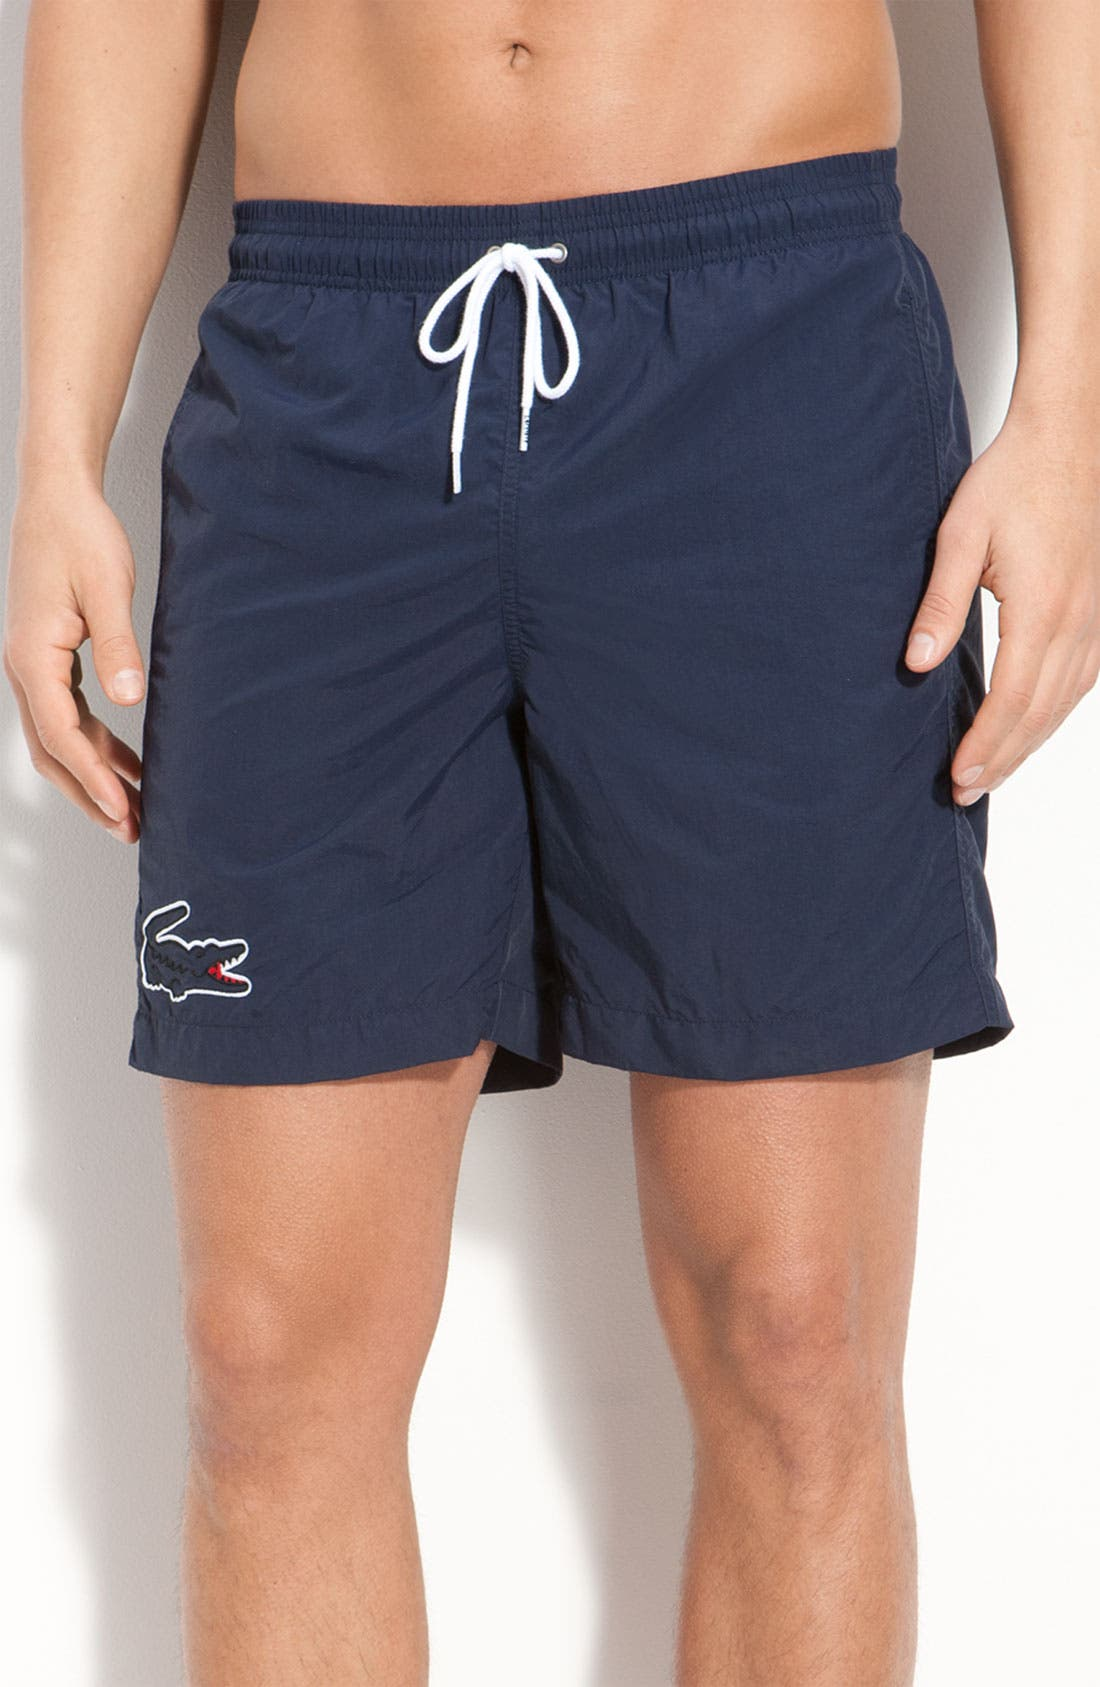 Alternate Image 1 Selected - Lacoste Swim Trunks (Online Exclusive)